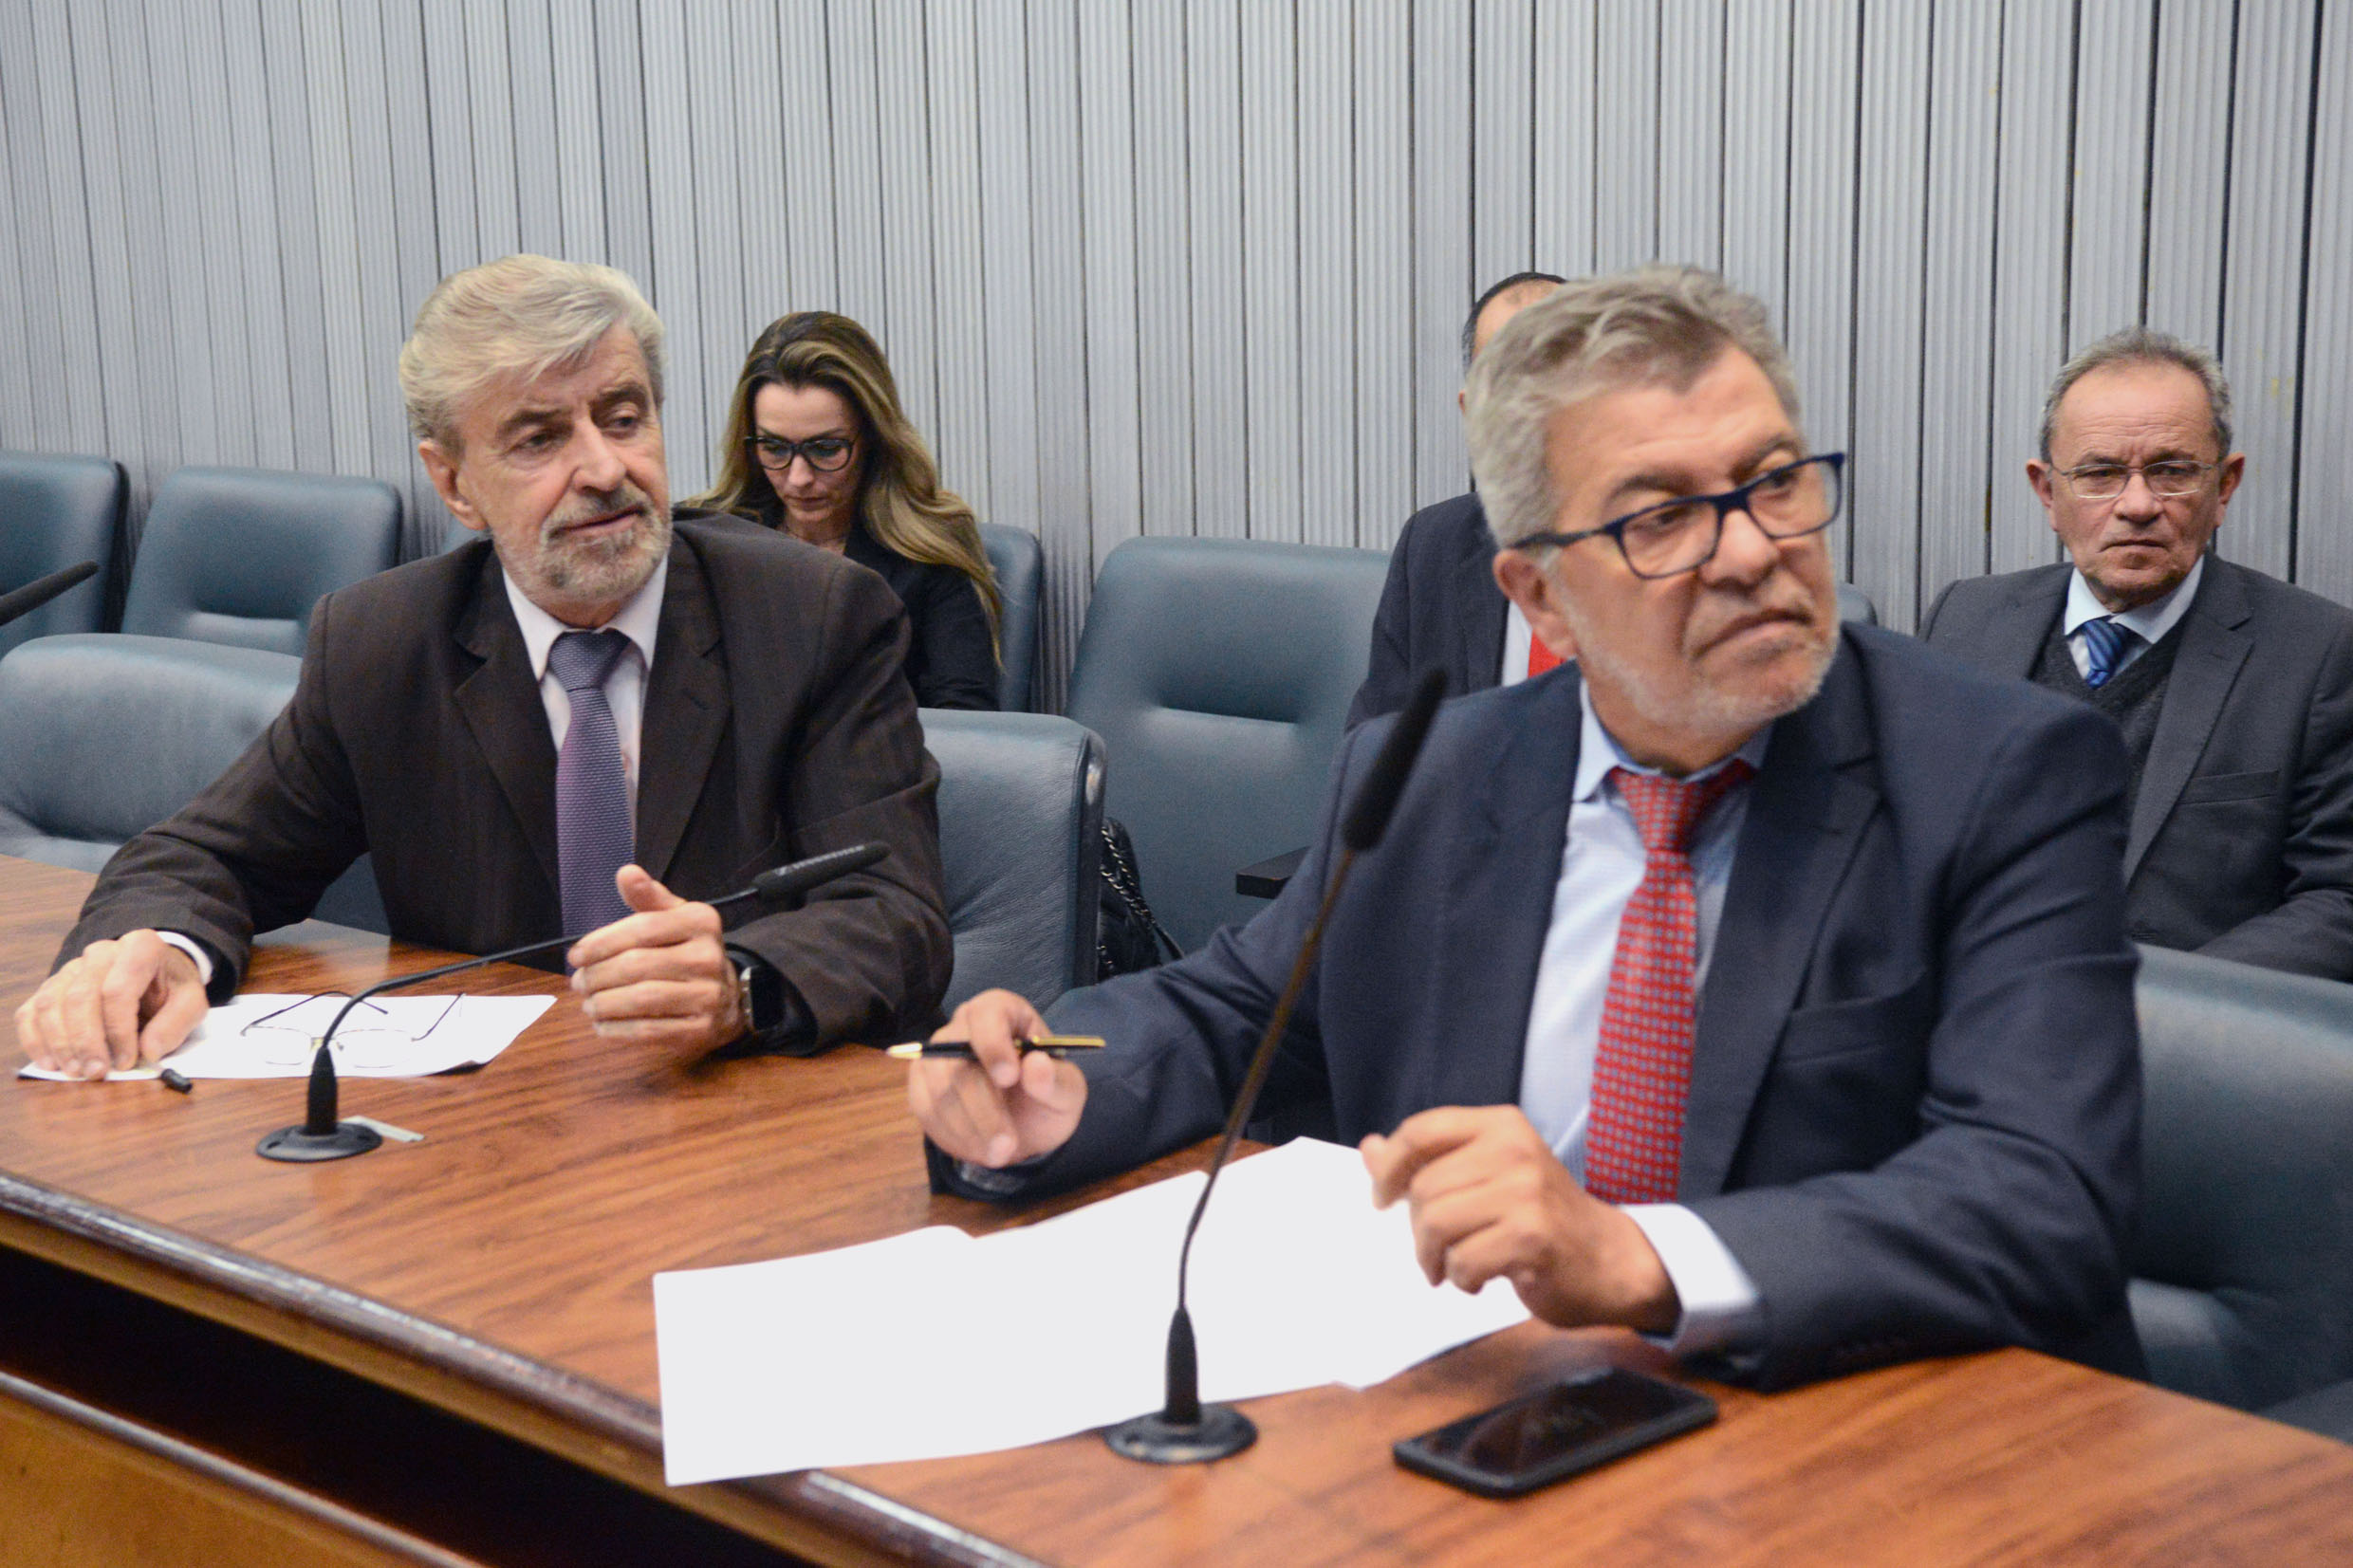 Parlamentares na comissão<a style='float:right' href='https://www3.al.sp.gov.br/repositorio/noticia/N-10-2018/fg227028.jpg' target=_blank><img src='/_img/material-file-download-white.png' width='14px' alt='Clique para baixar a imagem'></a>